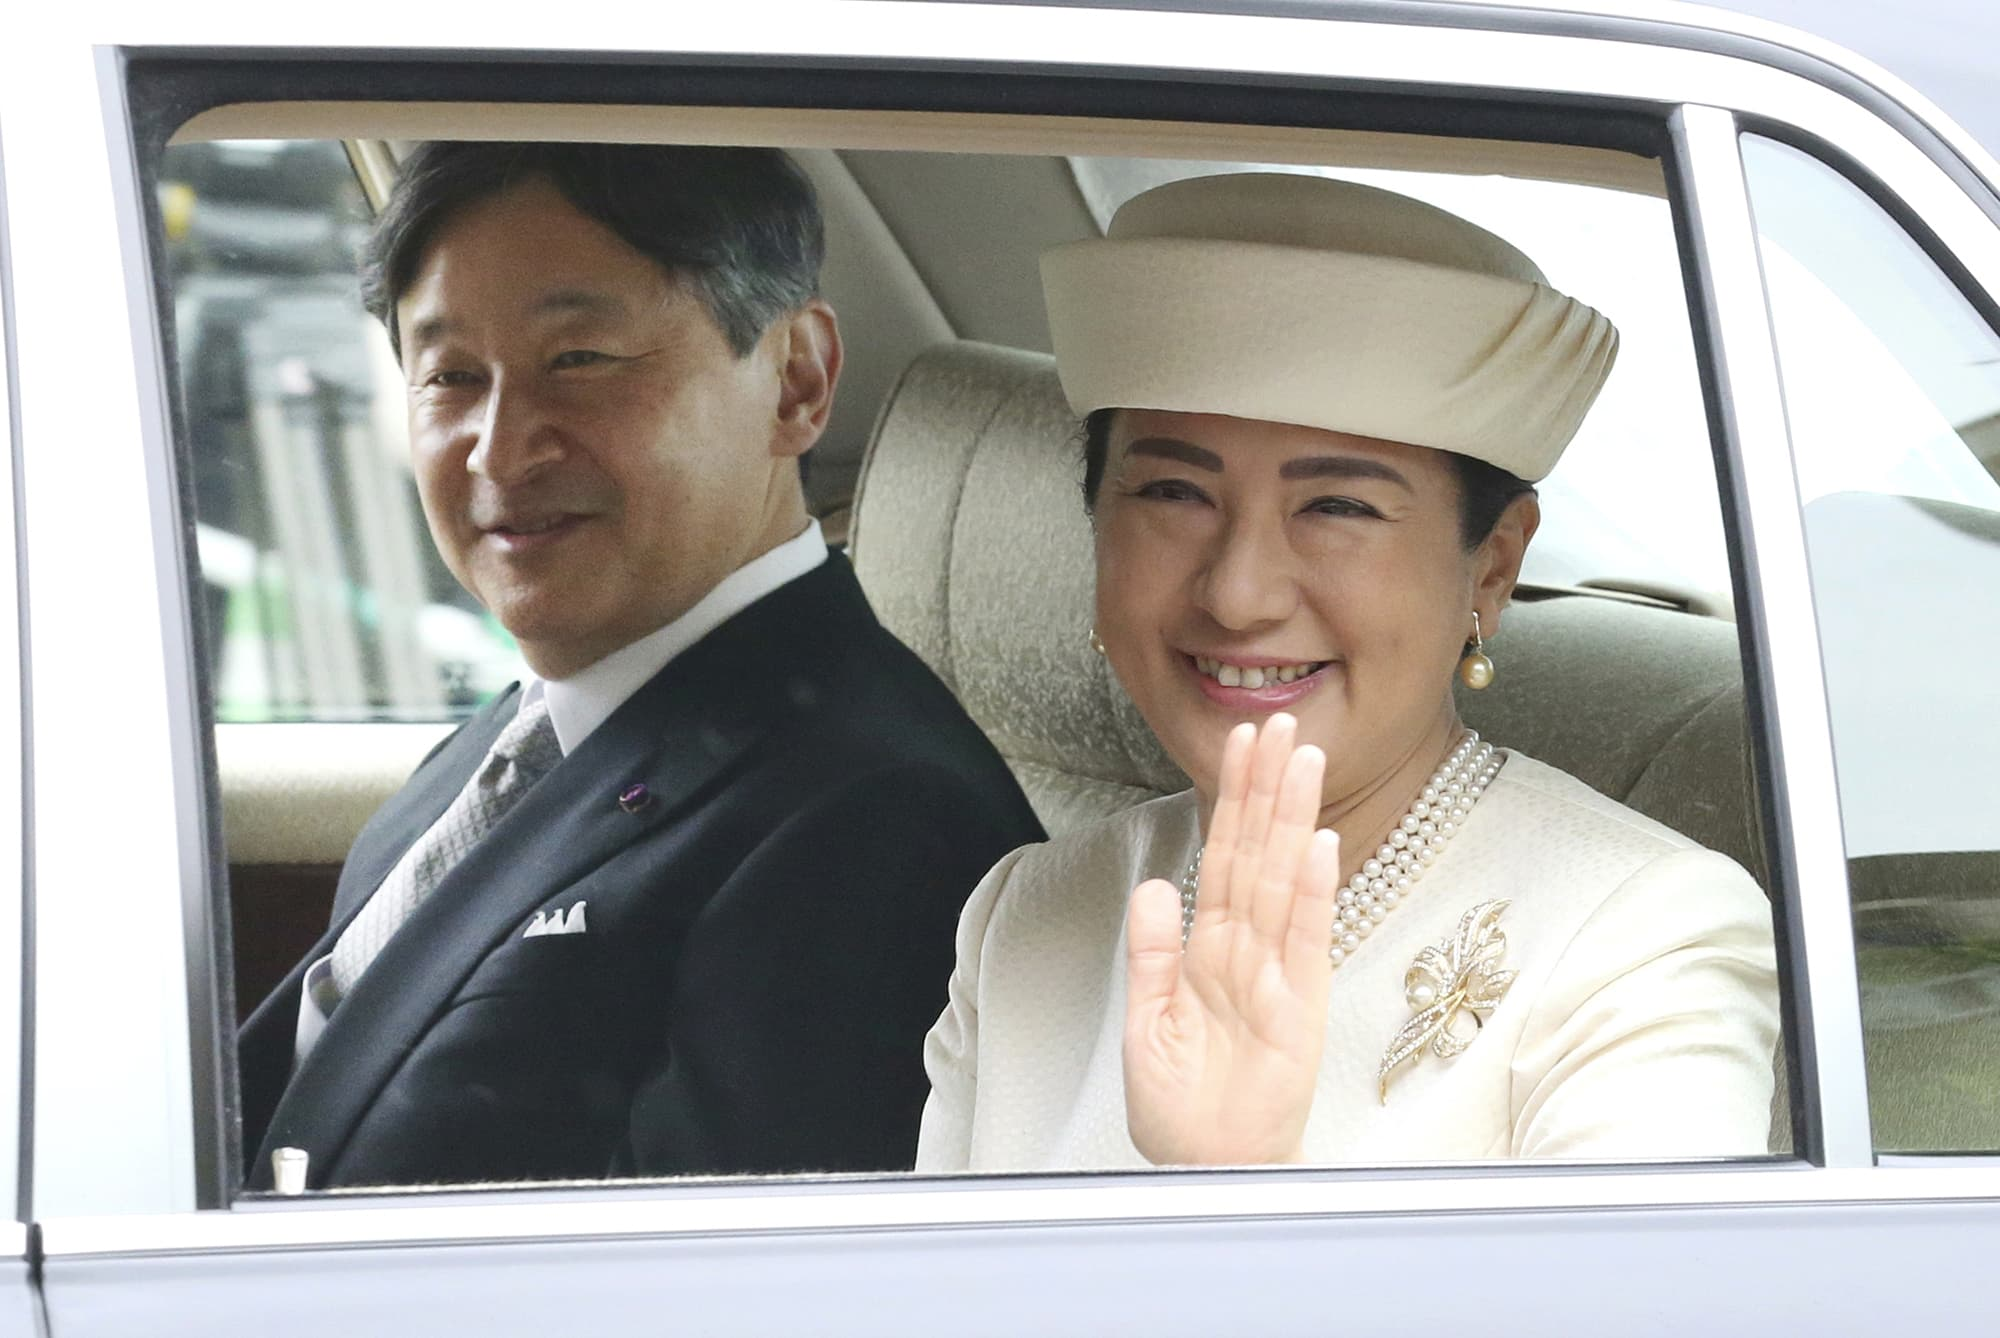 Japan's new Emperor Naruhito and new Empress Masako are driven to Imperial Palace to greet Emperor Emeritus Akihito and Empress Emerita Michiko in Tokyo. — AP